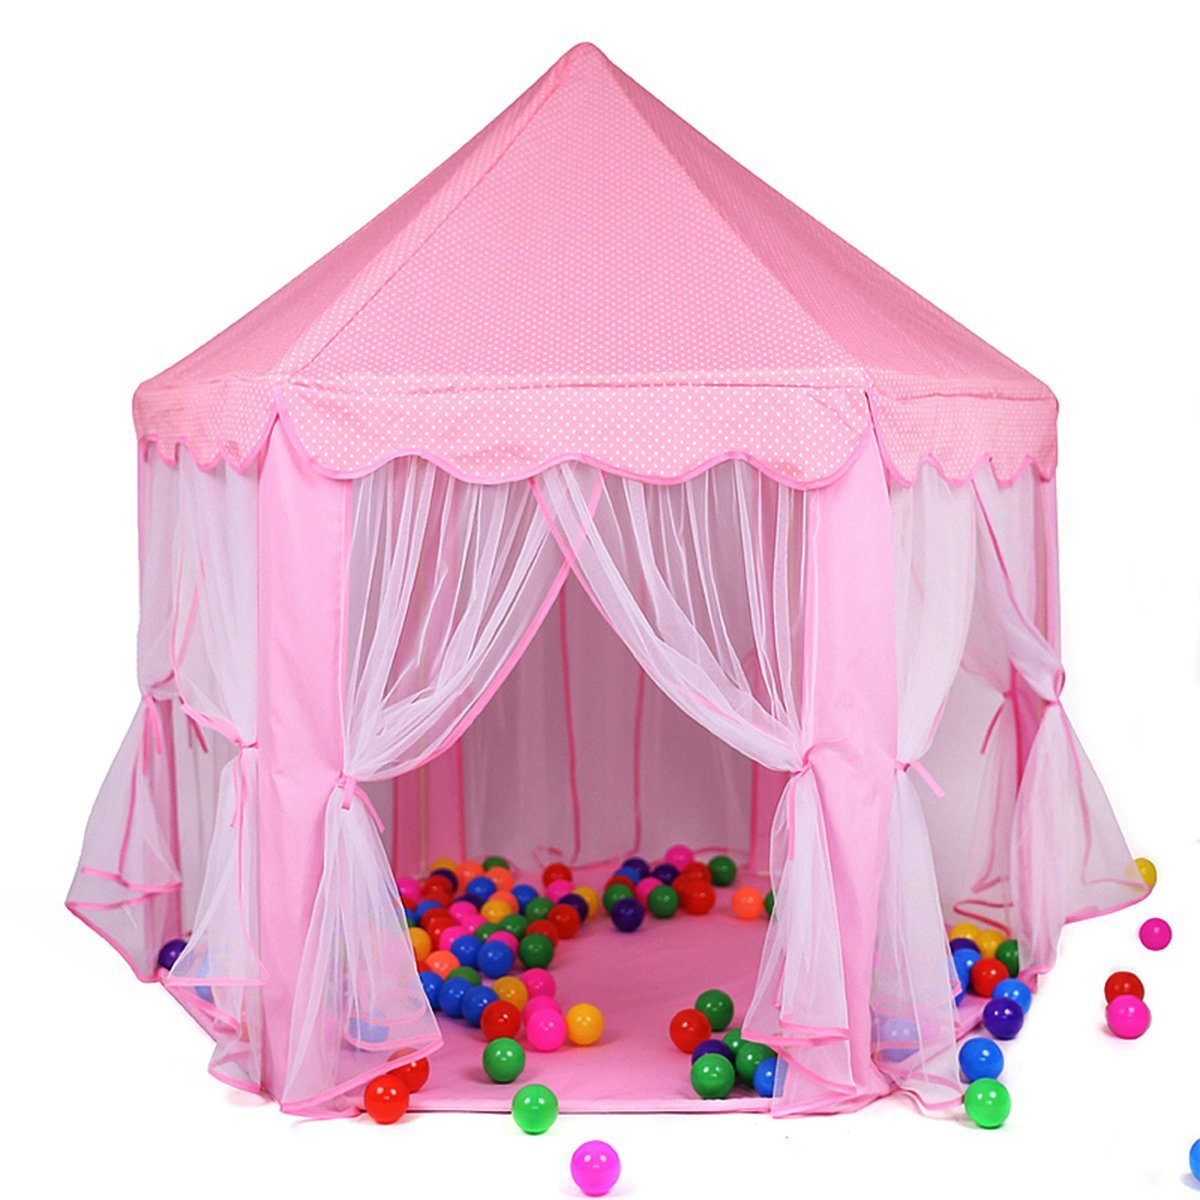 Princess Castle Play Tent House For Girls Indoor Outdoor Toy 56 x 54 inches Pink